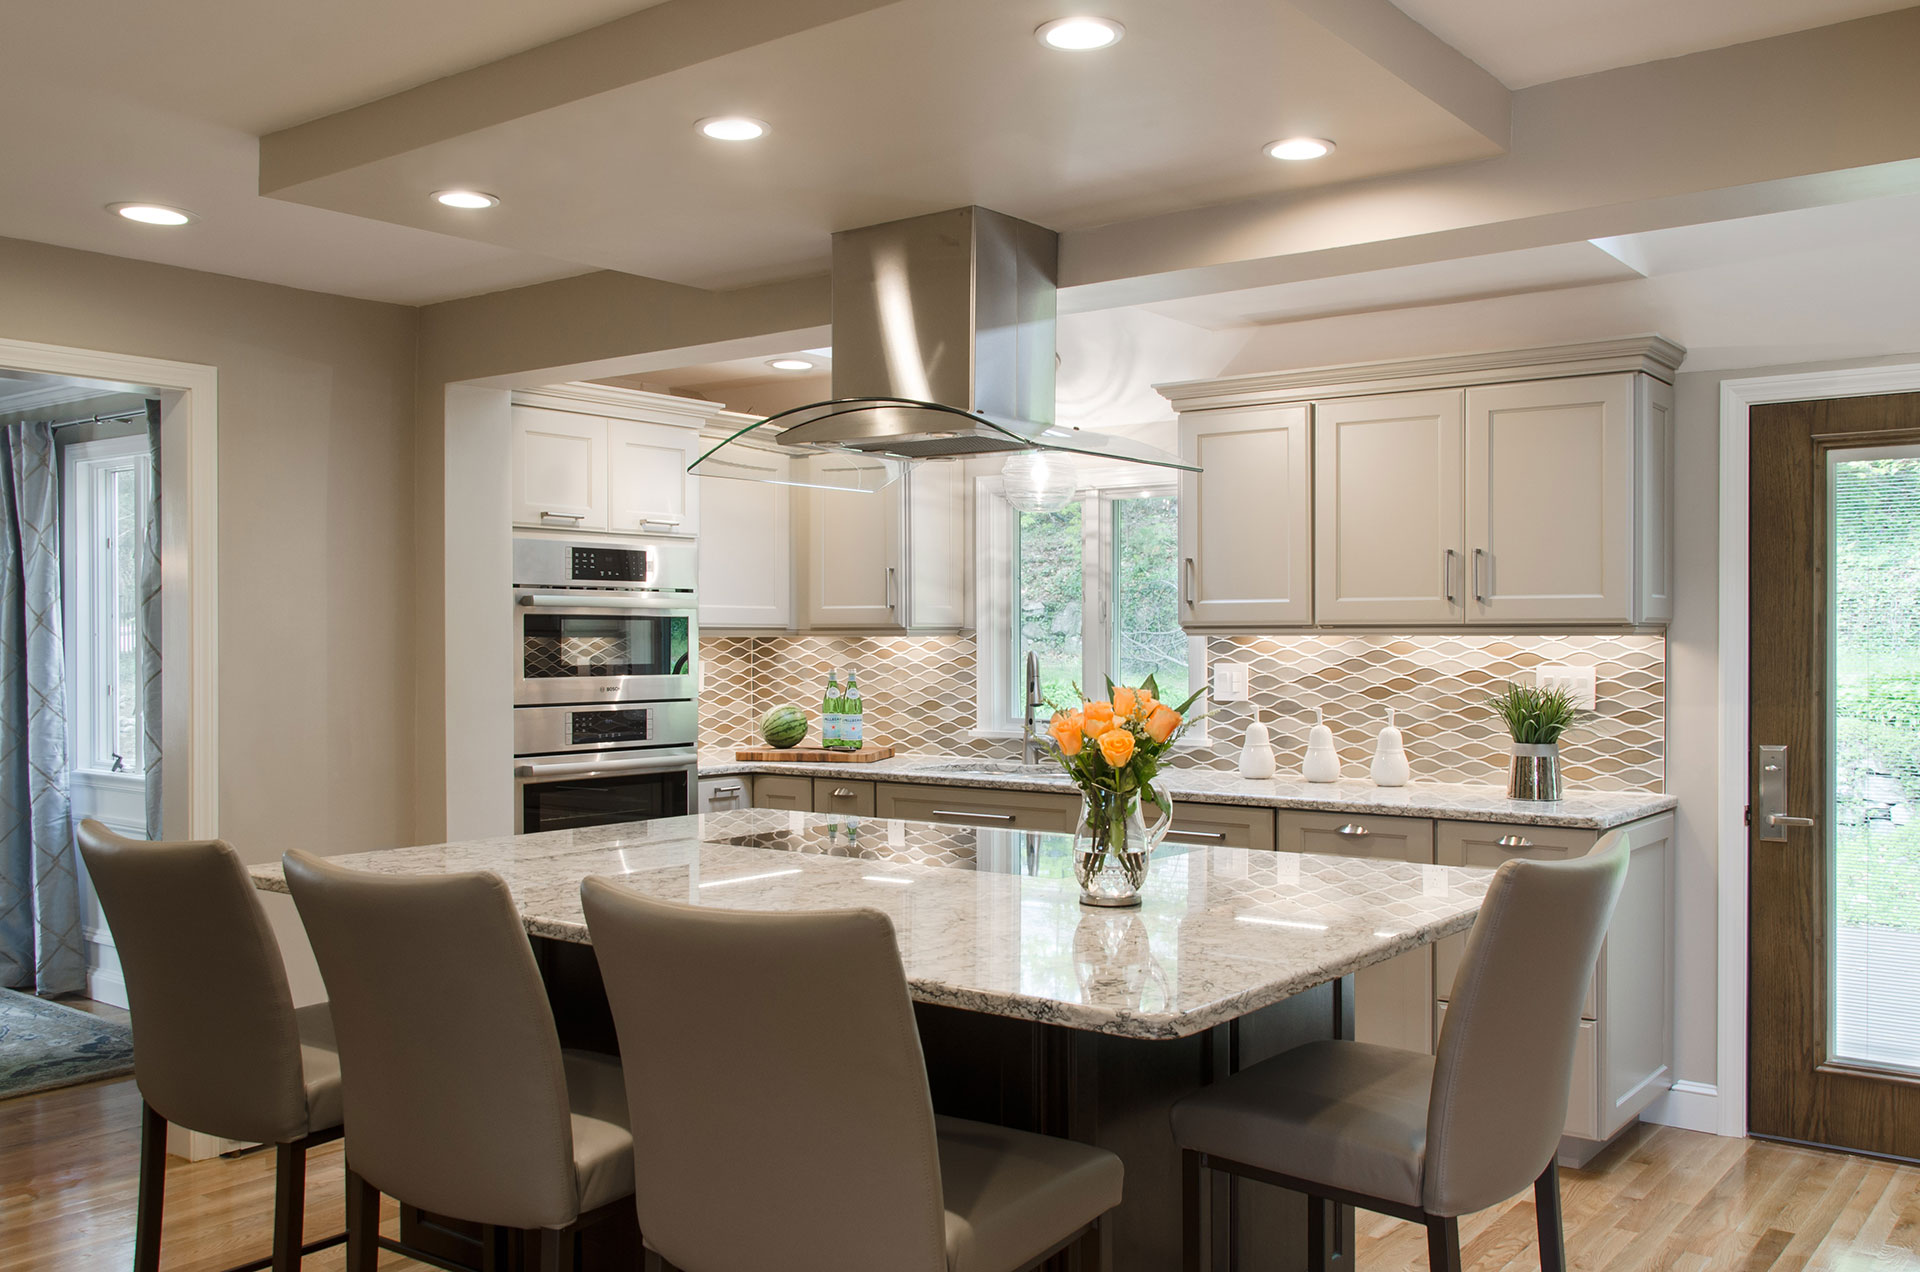 Kitchen interior by Susan Curtis Interiors, Braintree, MA